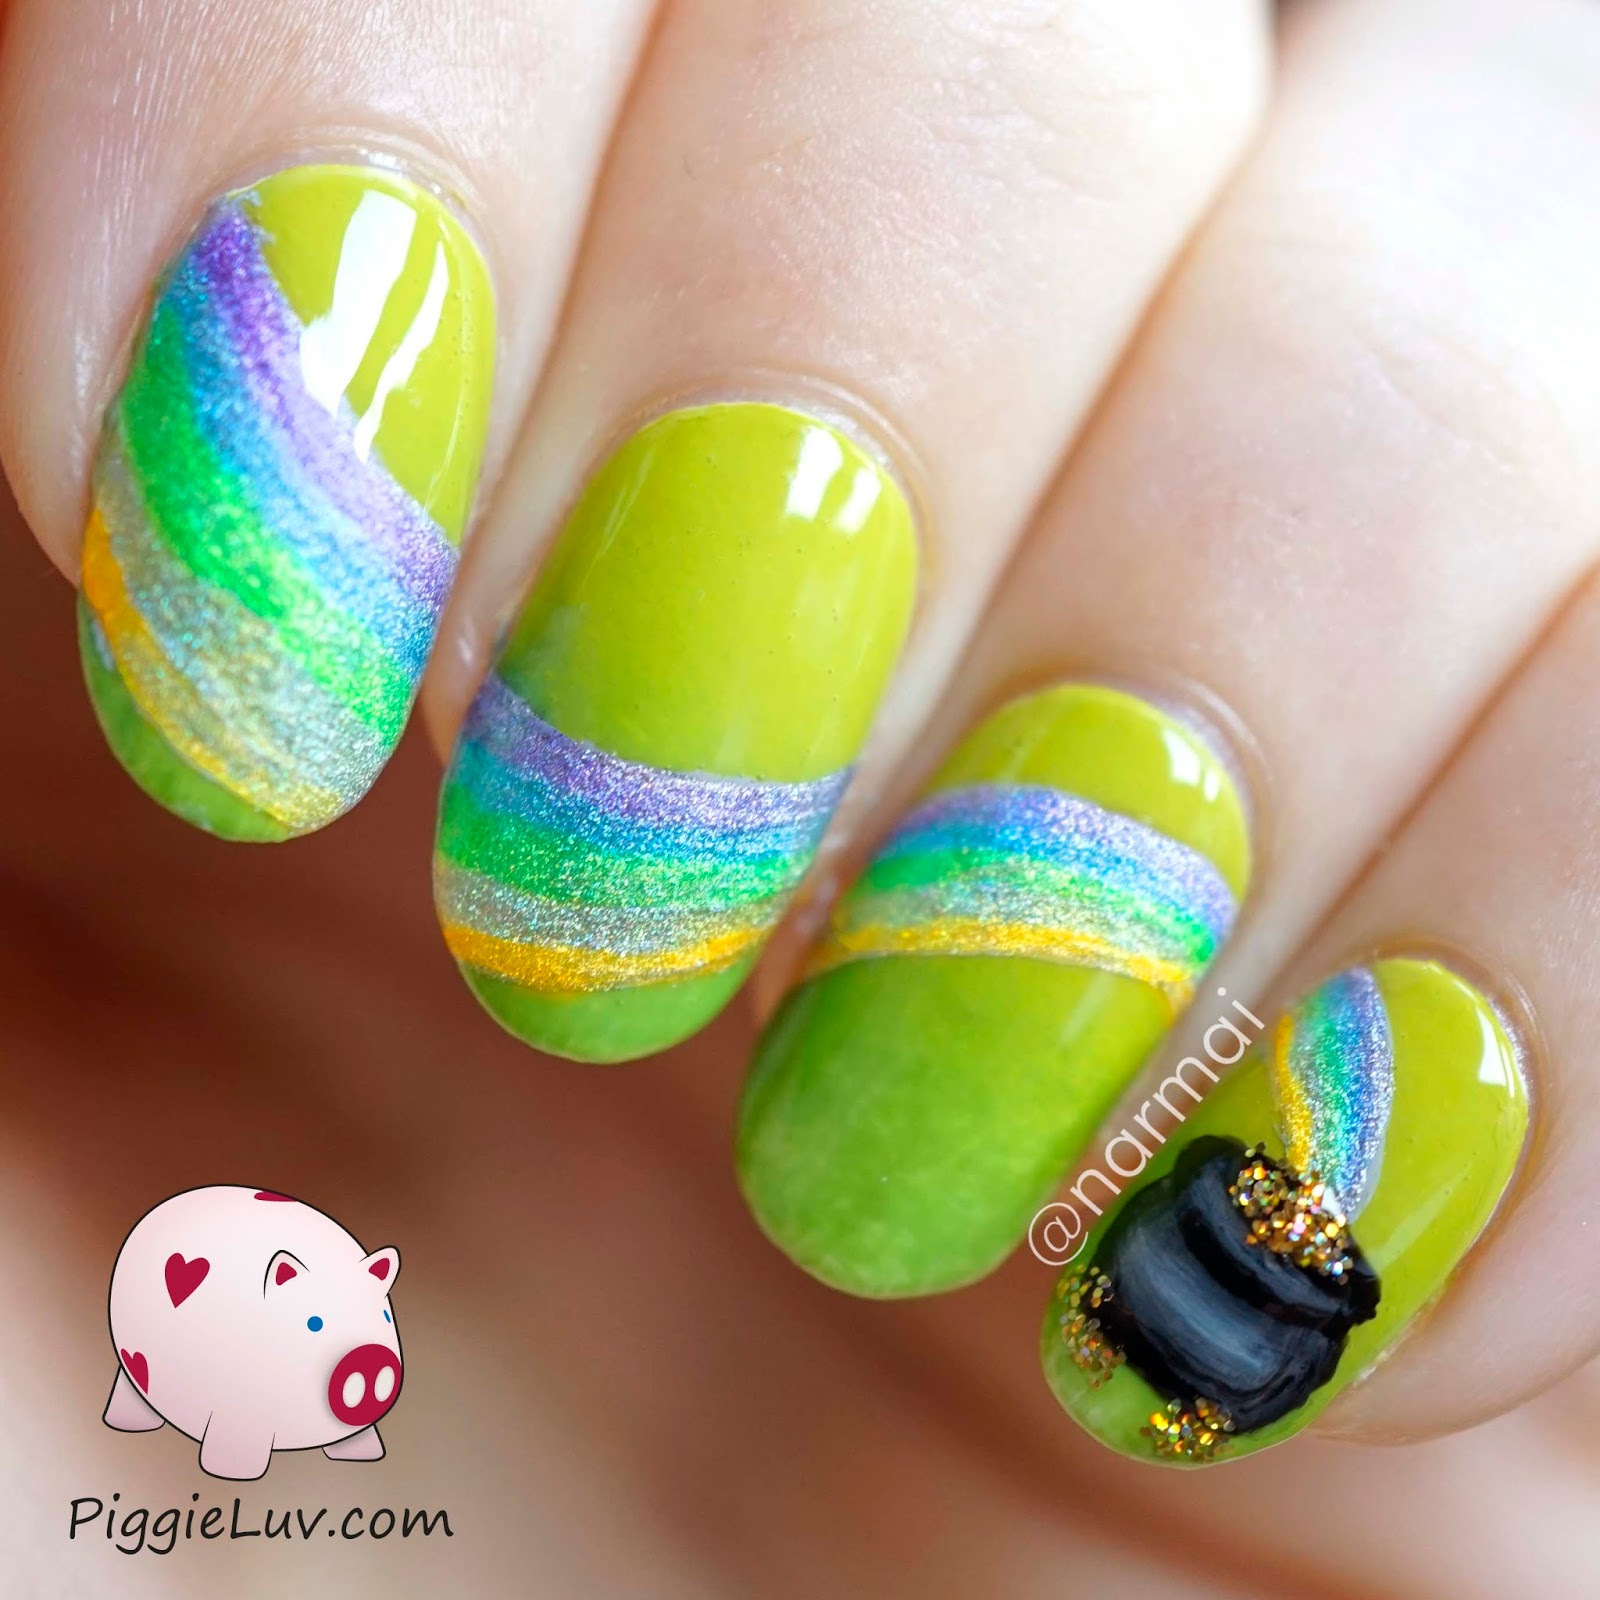 nail art design neon arrow nail art design mermaid nail art button